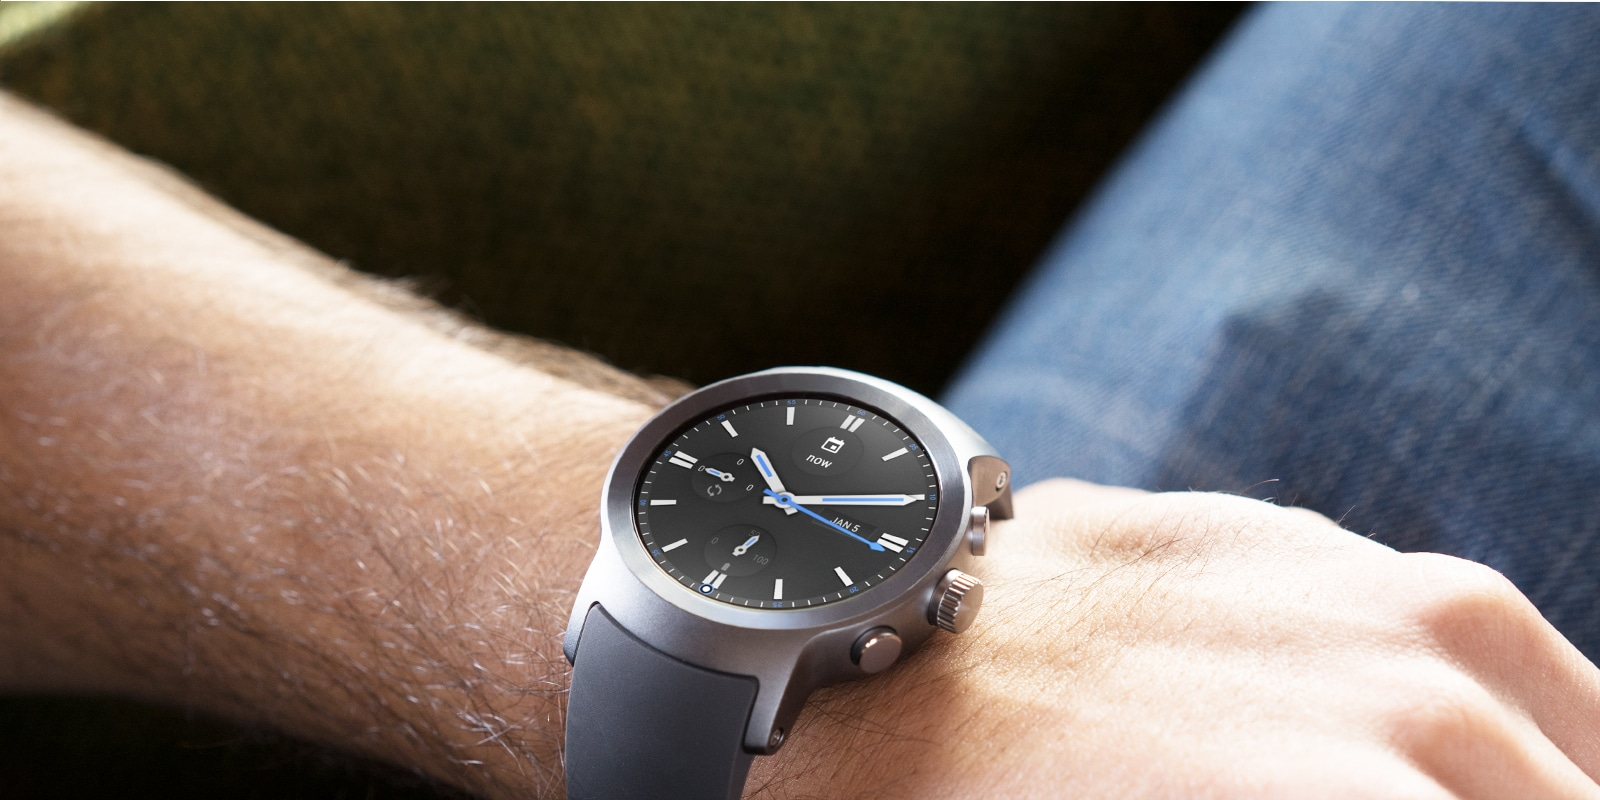 google launches android wear 2 0 alongside two lg watches - Google launches Android Wear 2.0, alongside two LG watches